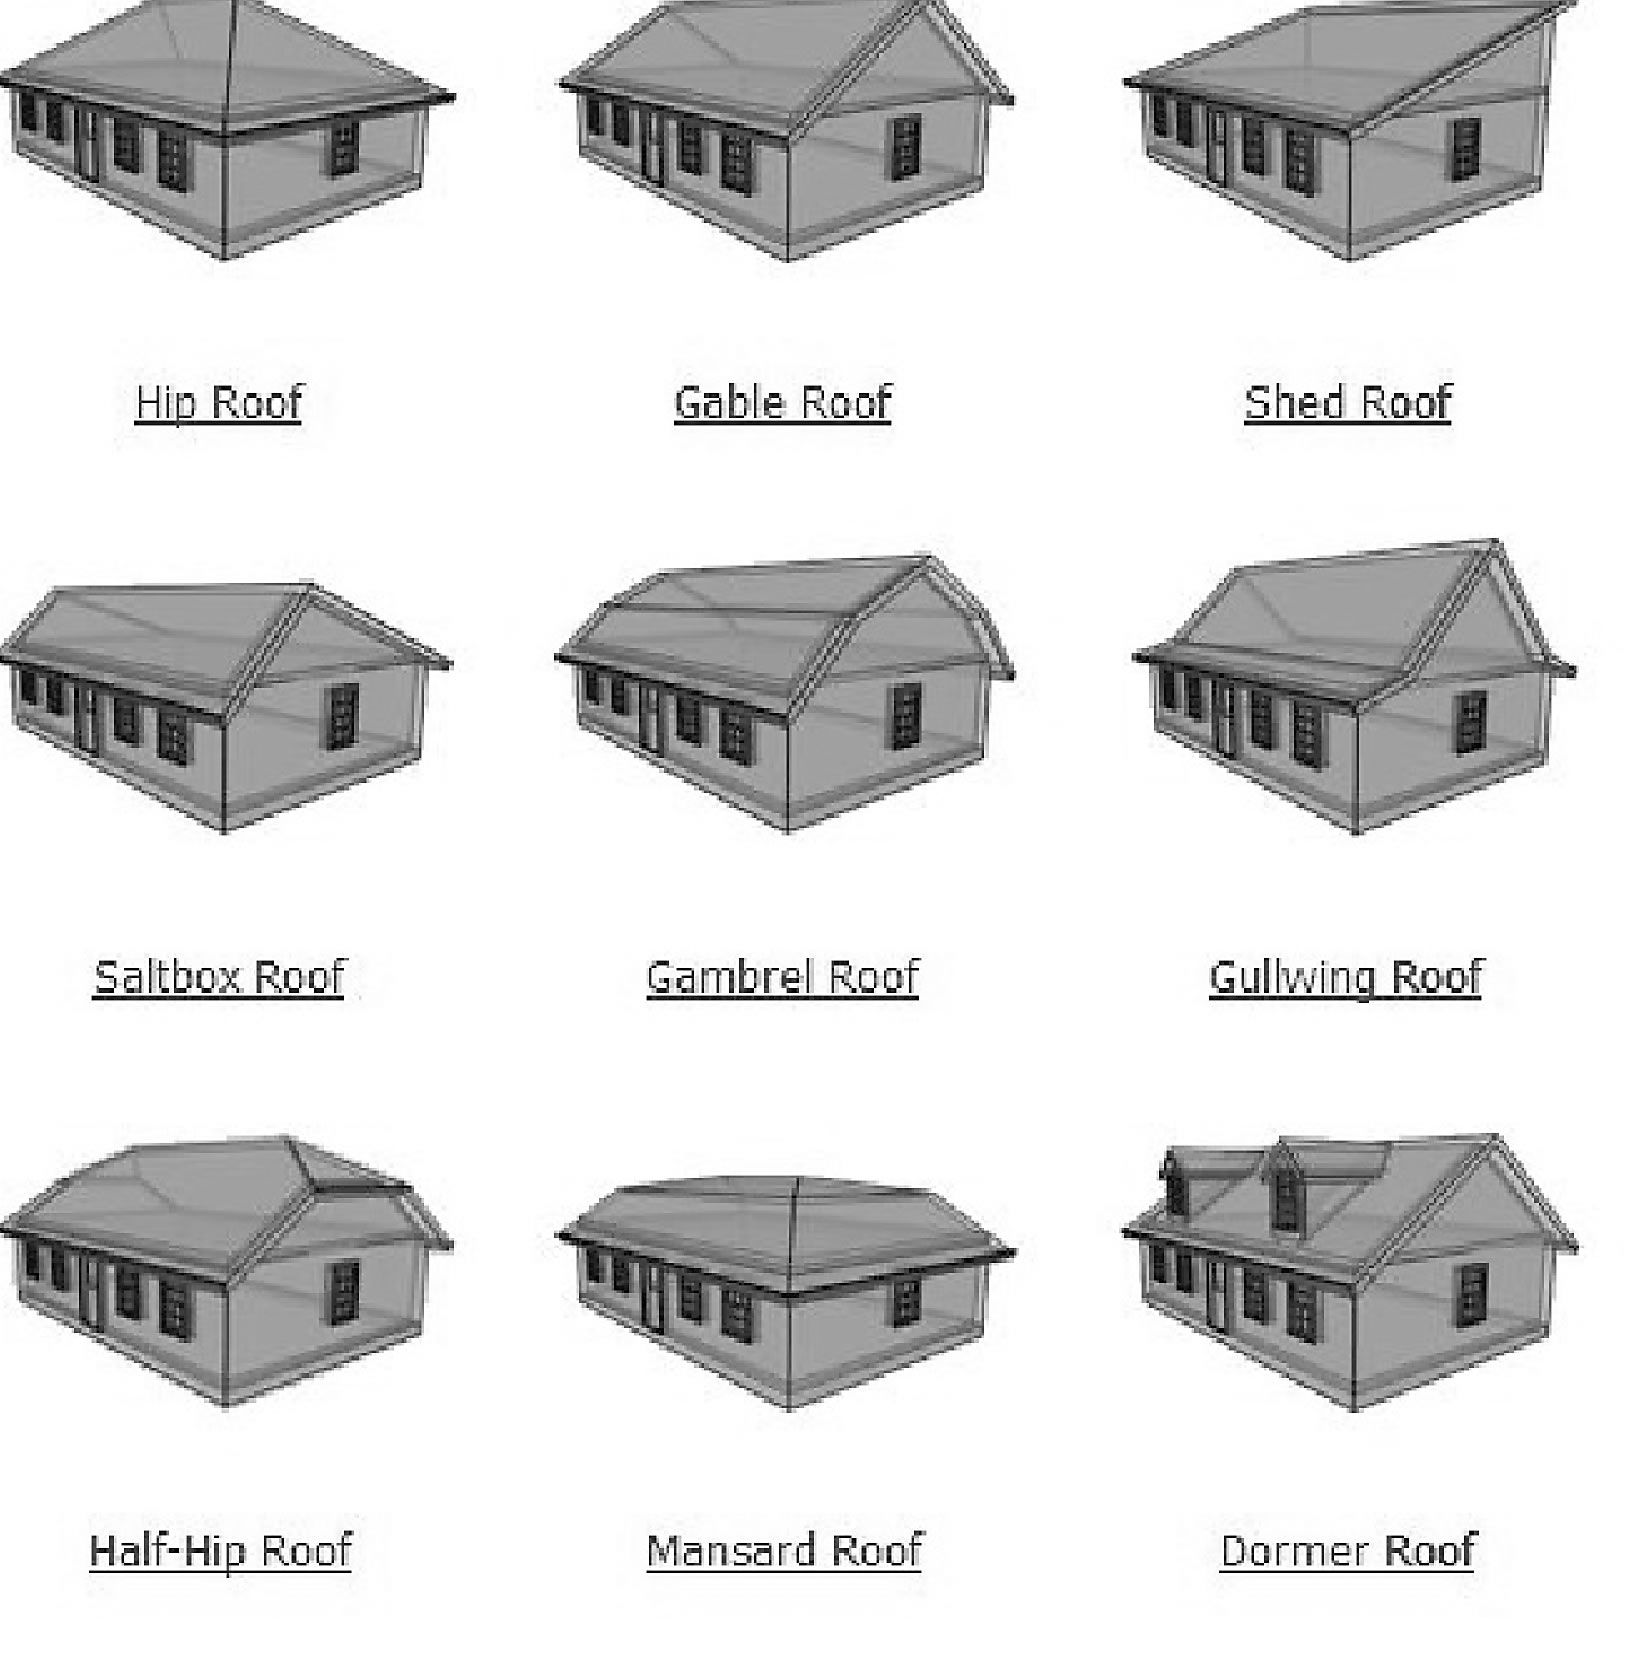 French roof styles roofs and shed dormer roofs they for House design styles